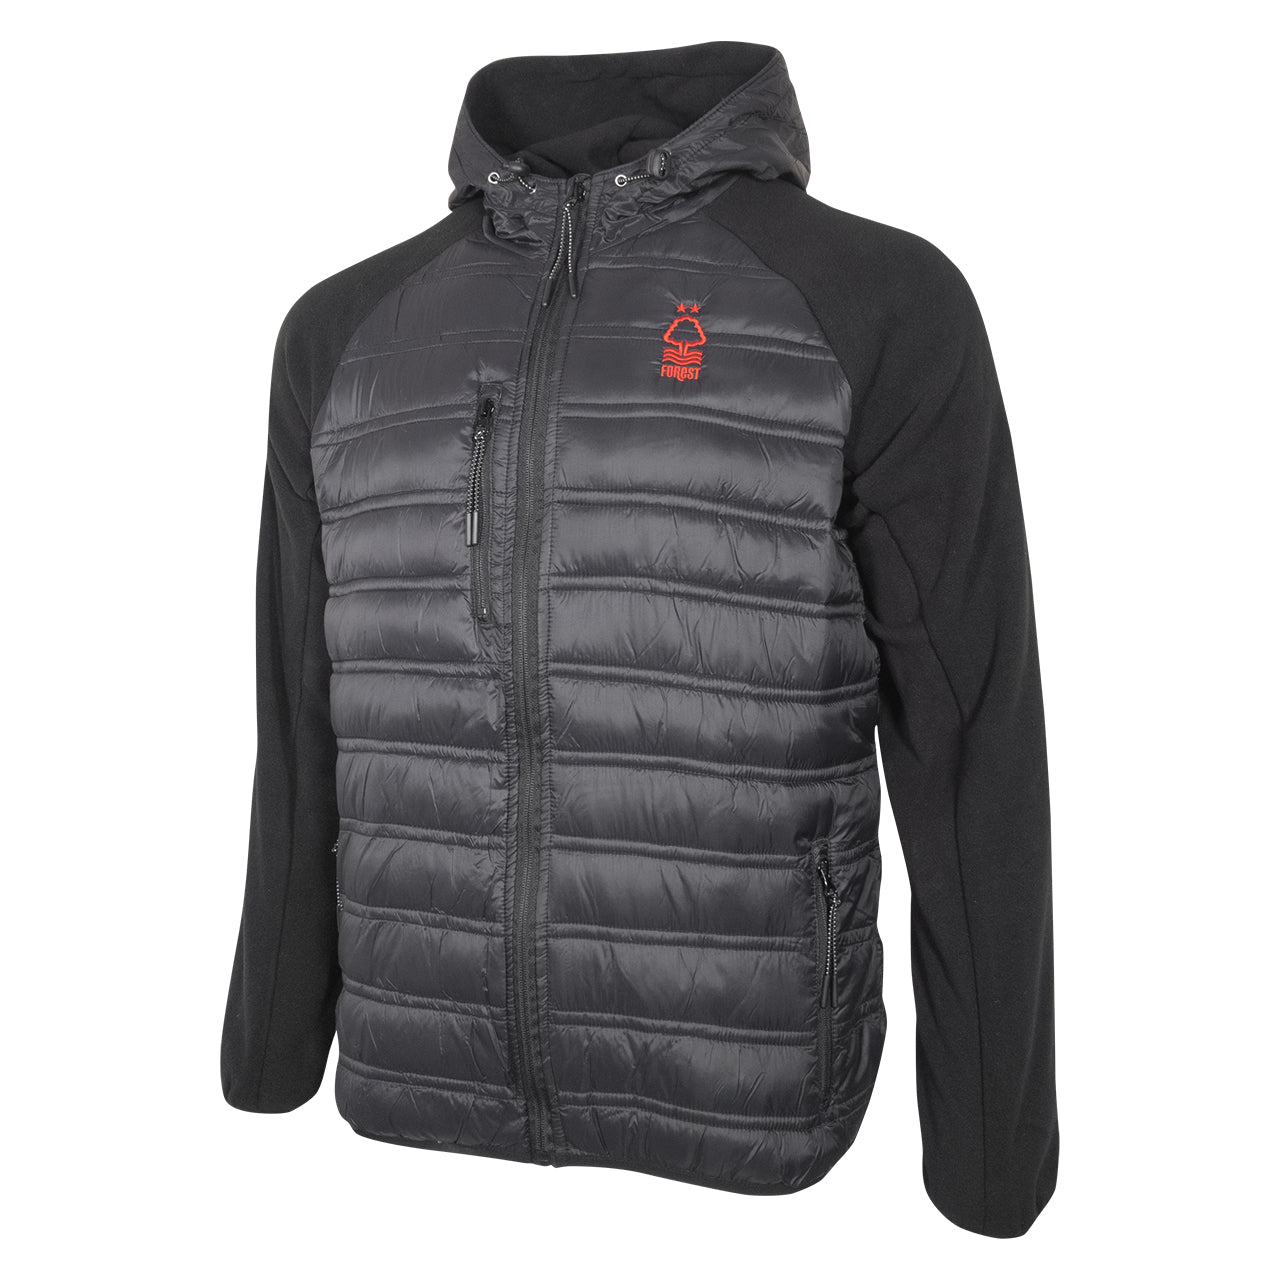 NFFC Mens Black Essential Downton Jacket